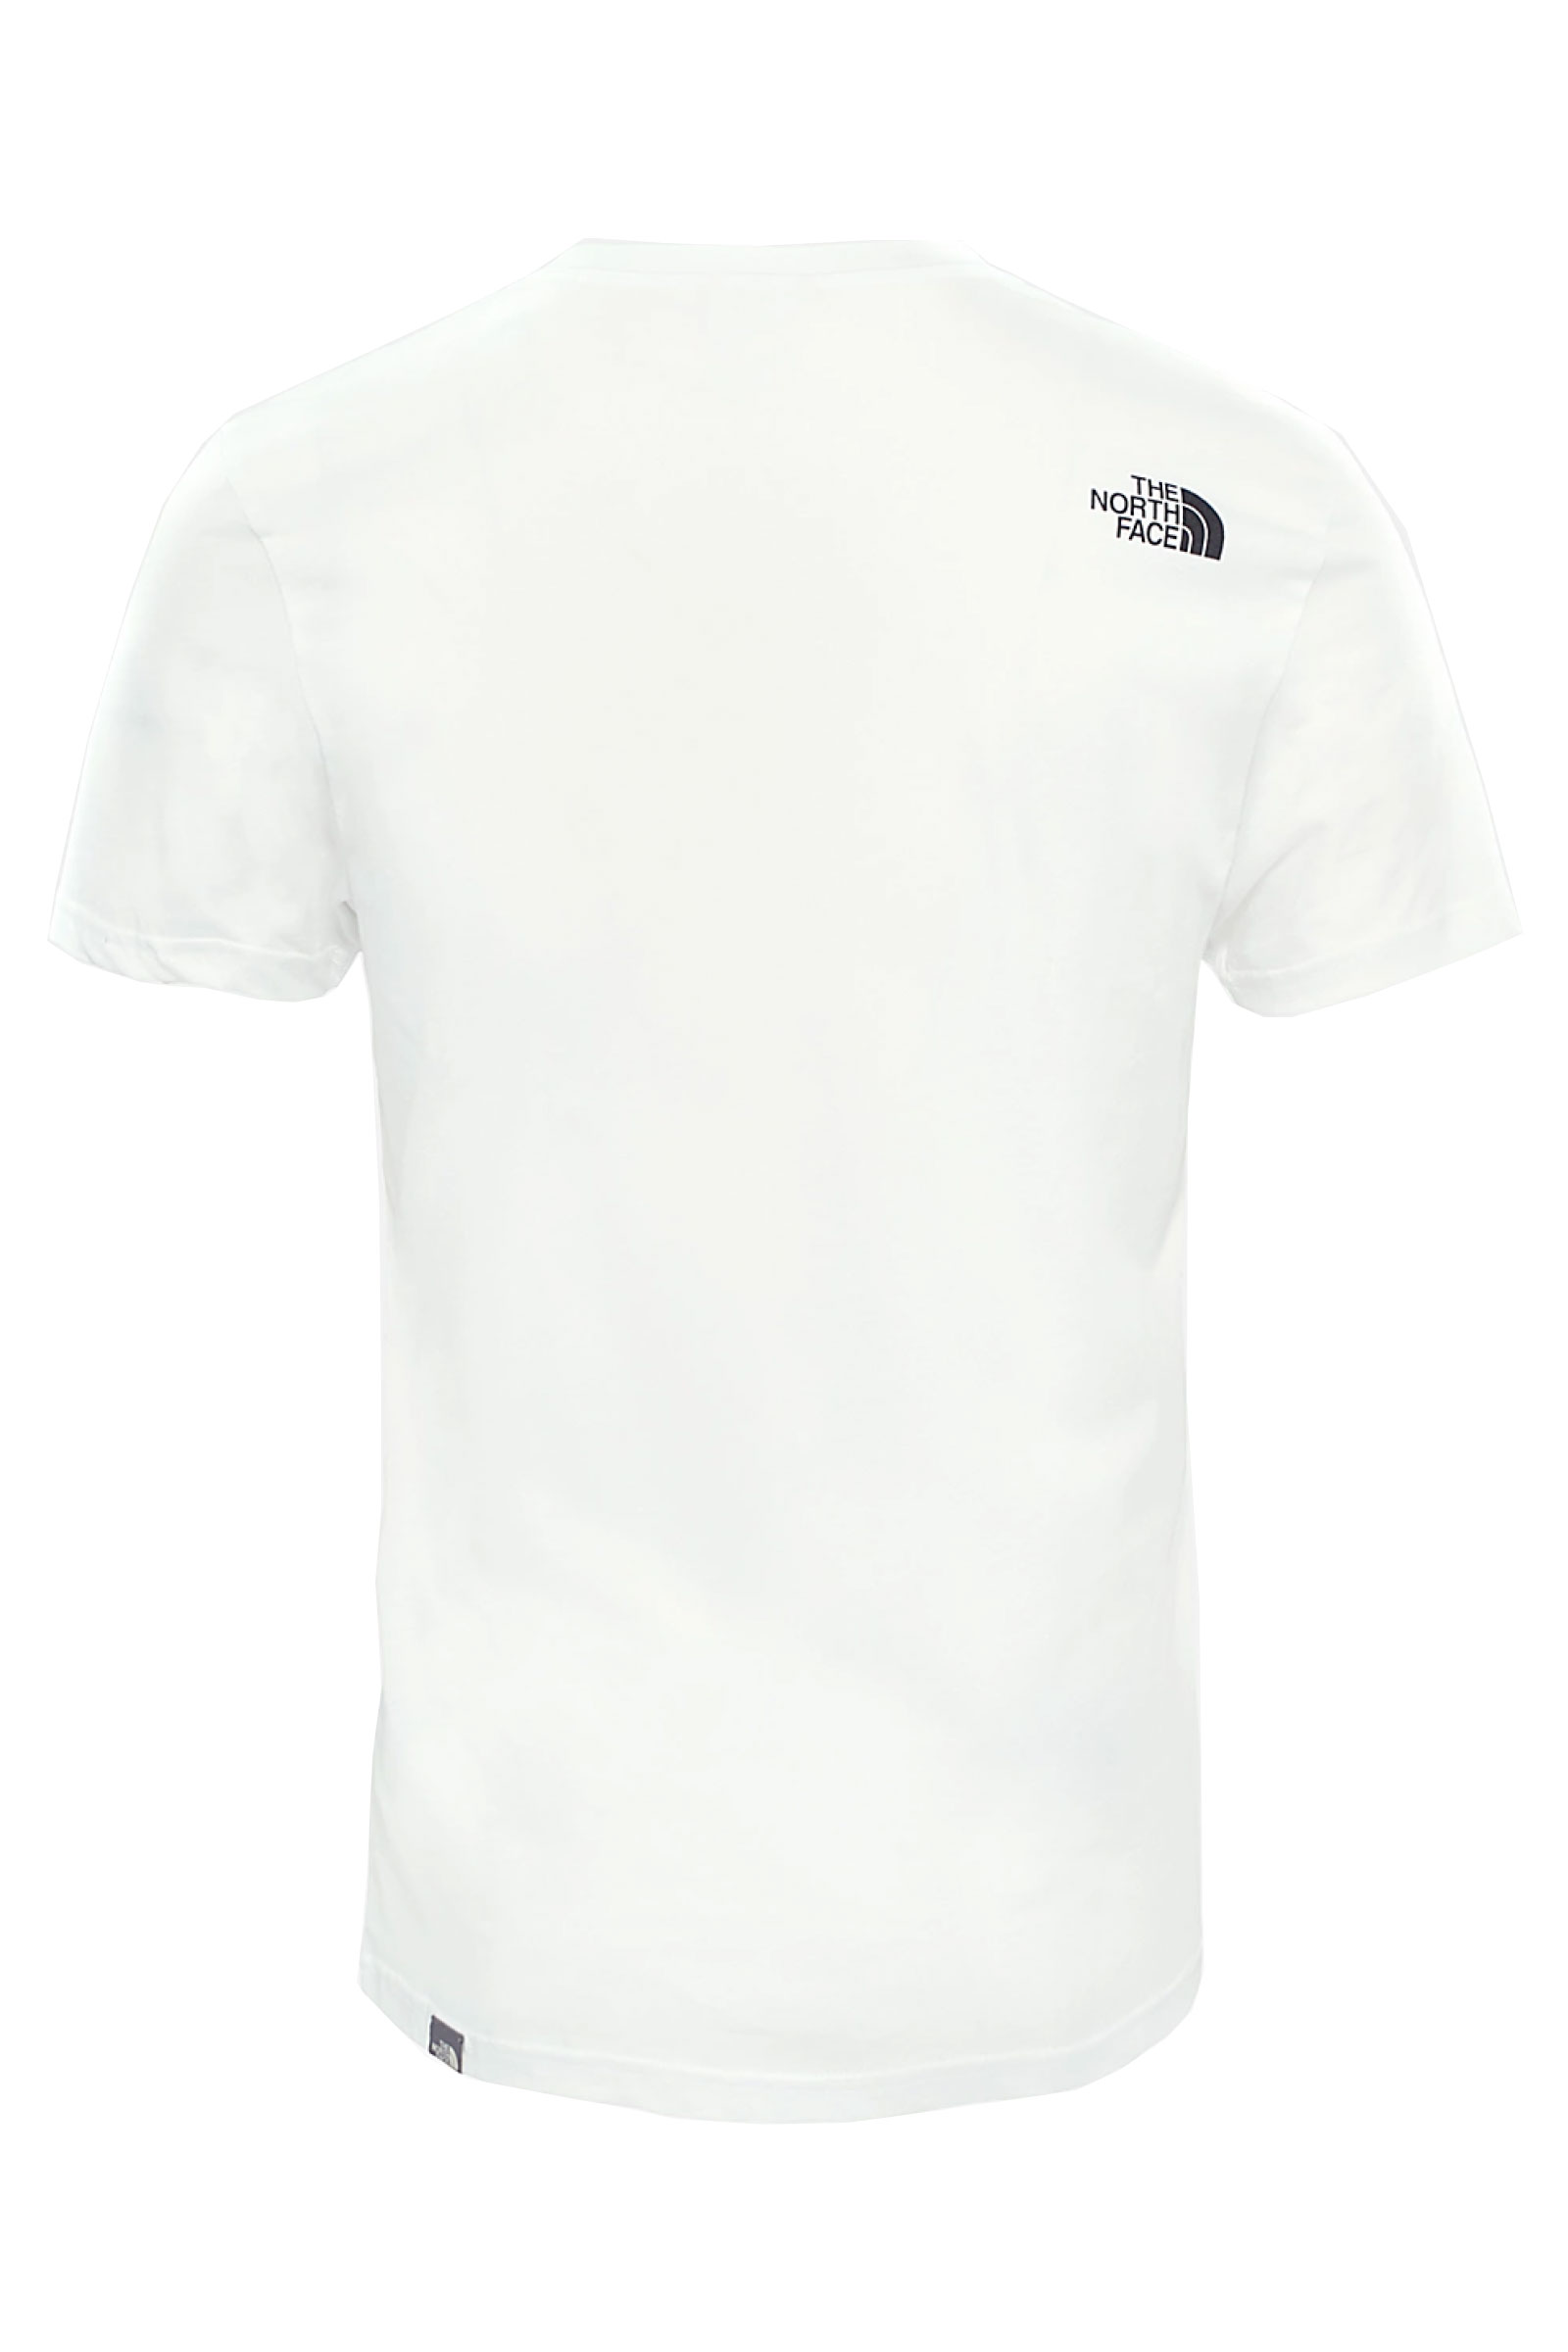 THE NORTH FACE | T-Shirt | NF0A2TX5FN41